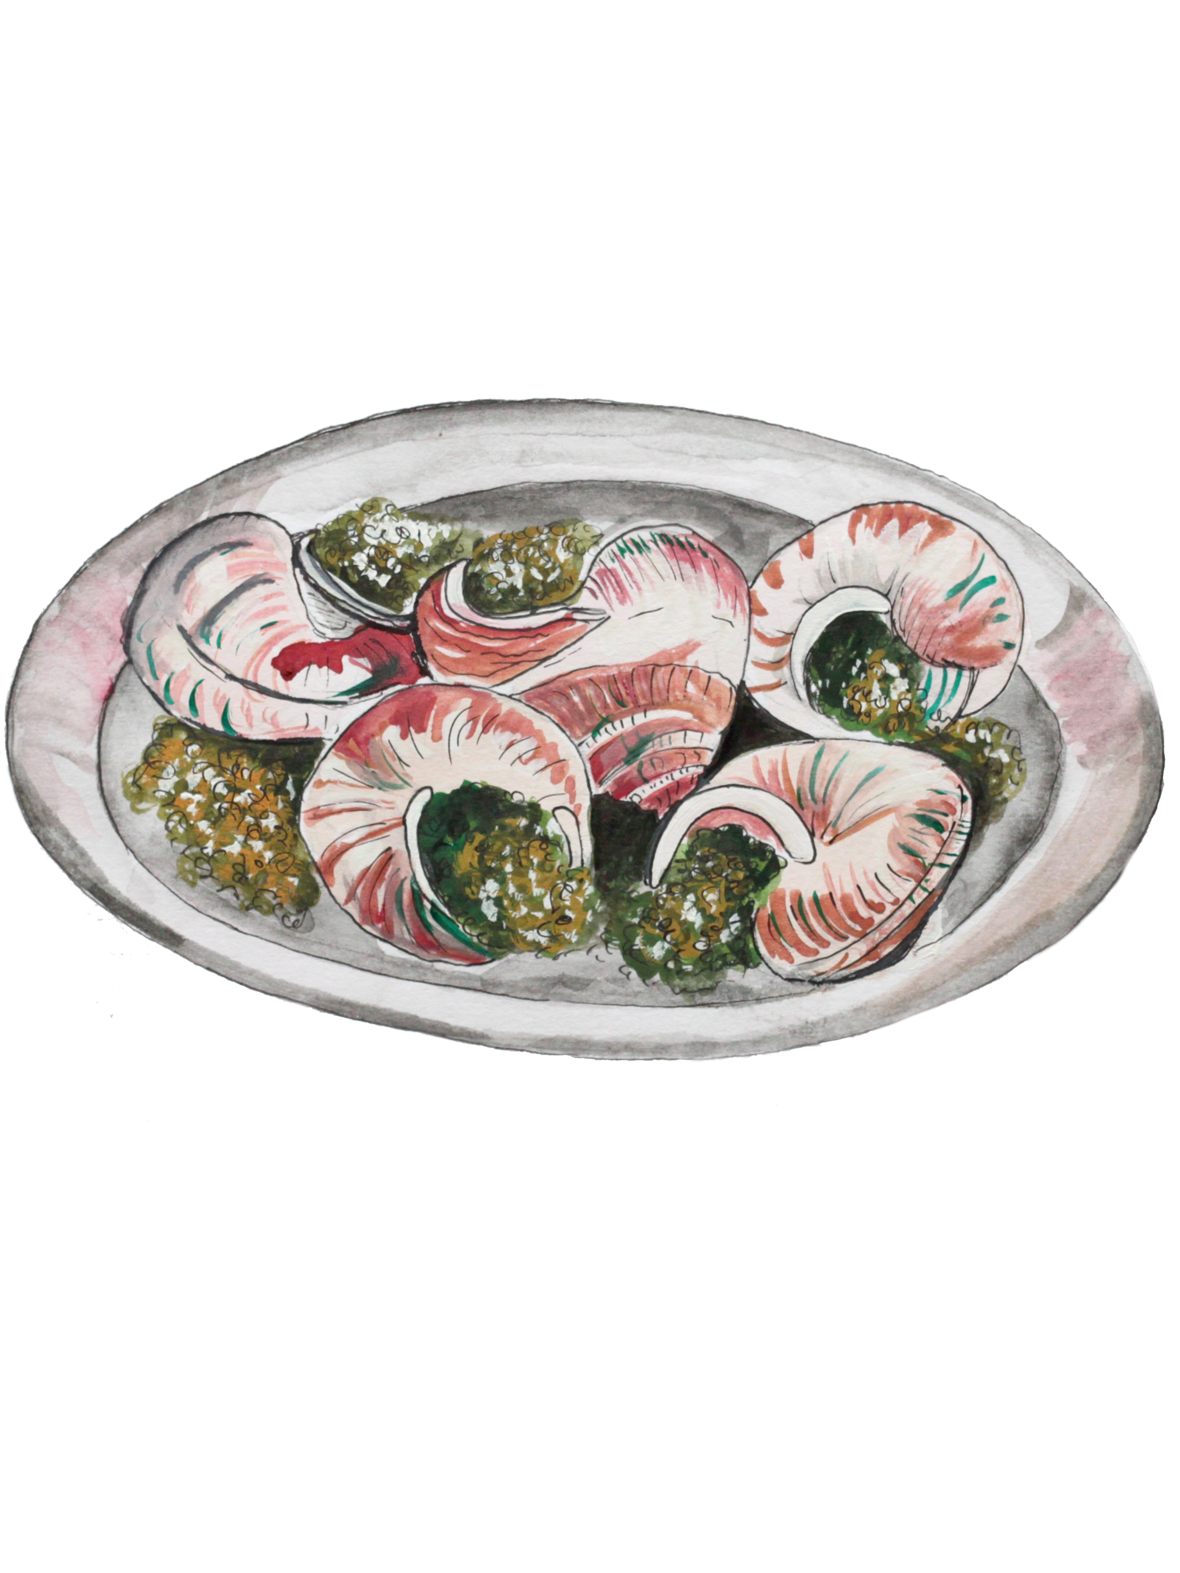 Illustration of Garlic Snails on a plate